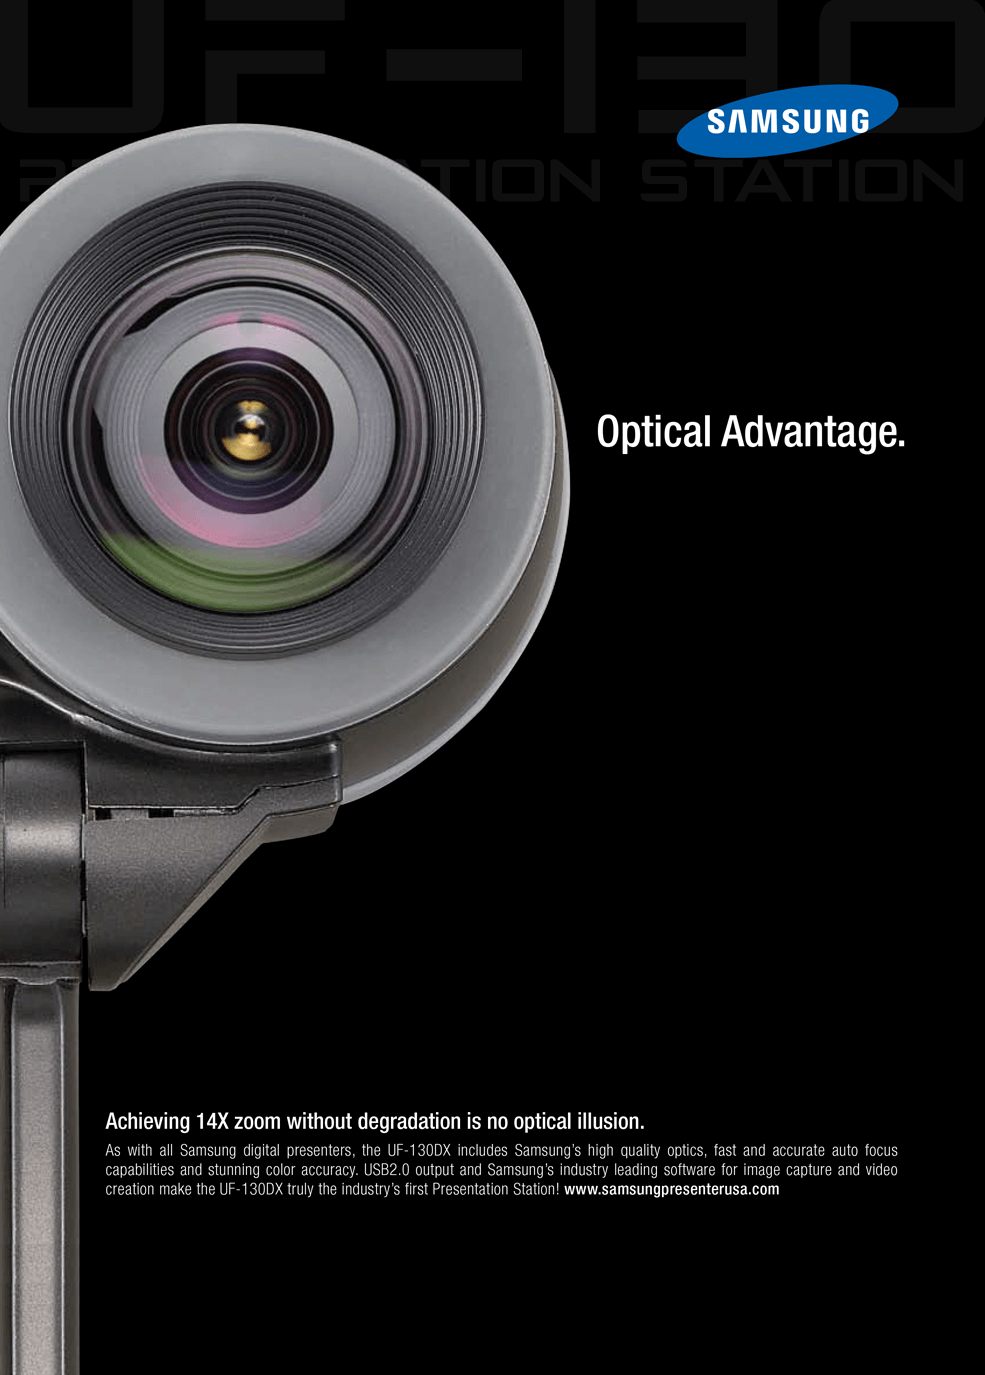 Samsung - Optical Advantage.